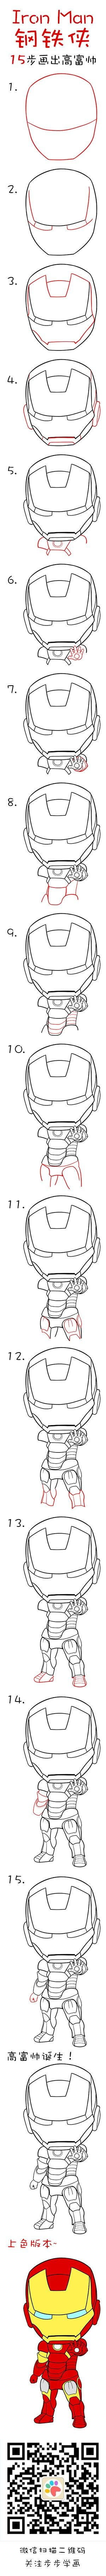 Learn how to draw Iron Man